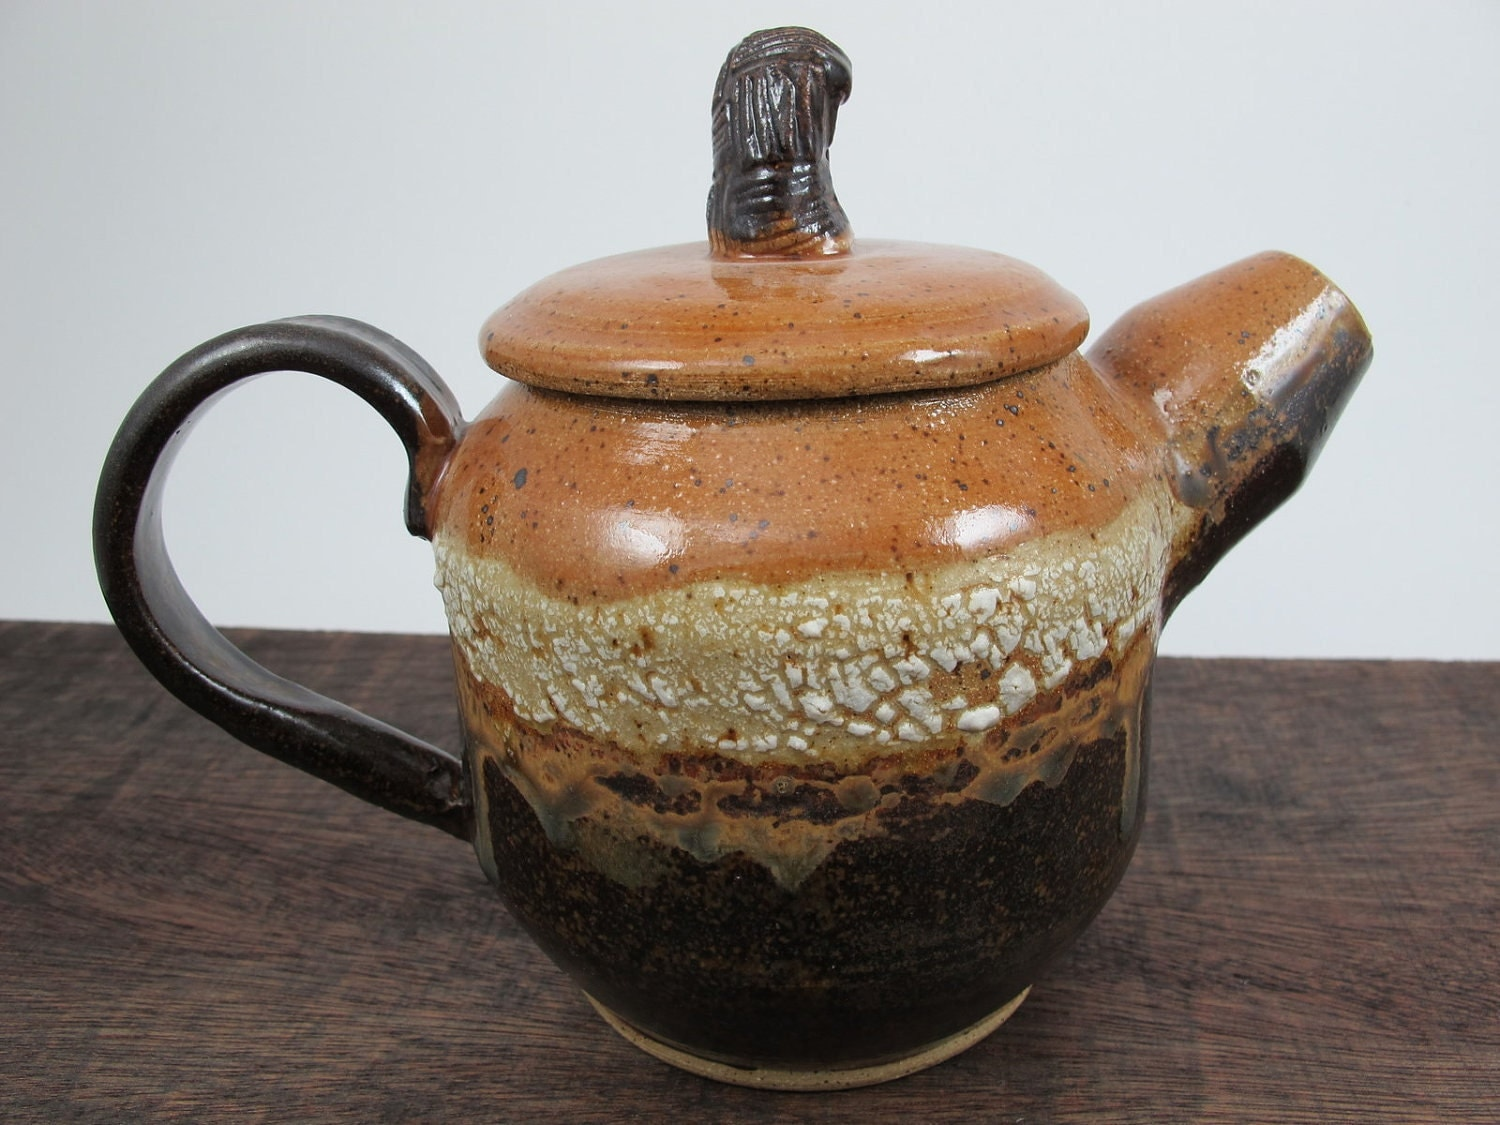 Stoneware Teapot in Brown Tones // Handmade Pottery Teapot